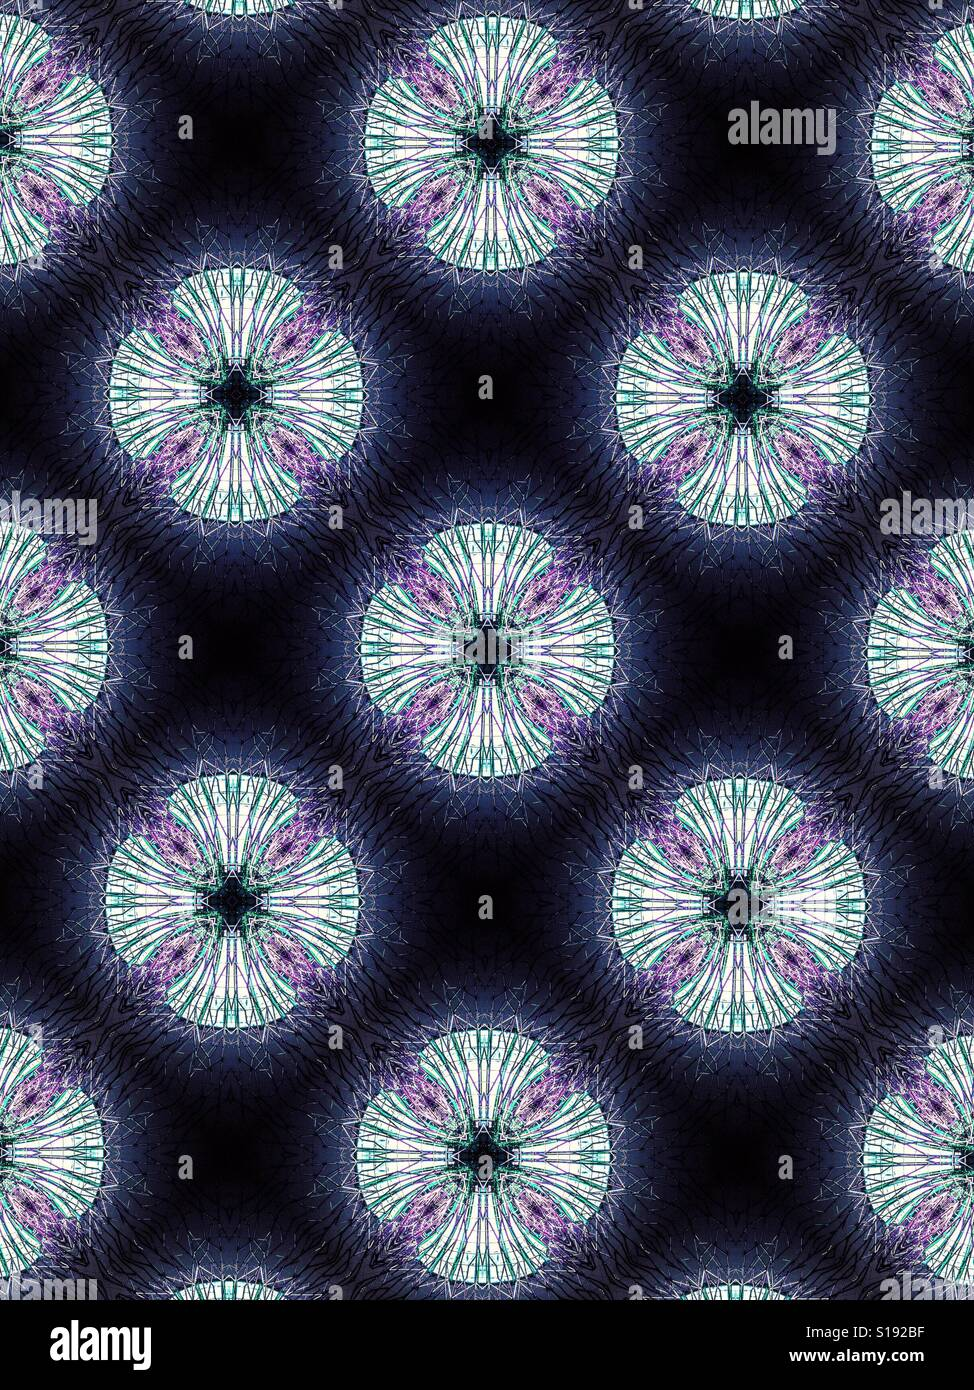 an abstract design featuring white floral starbursts on a purple